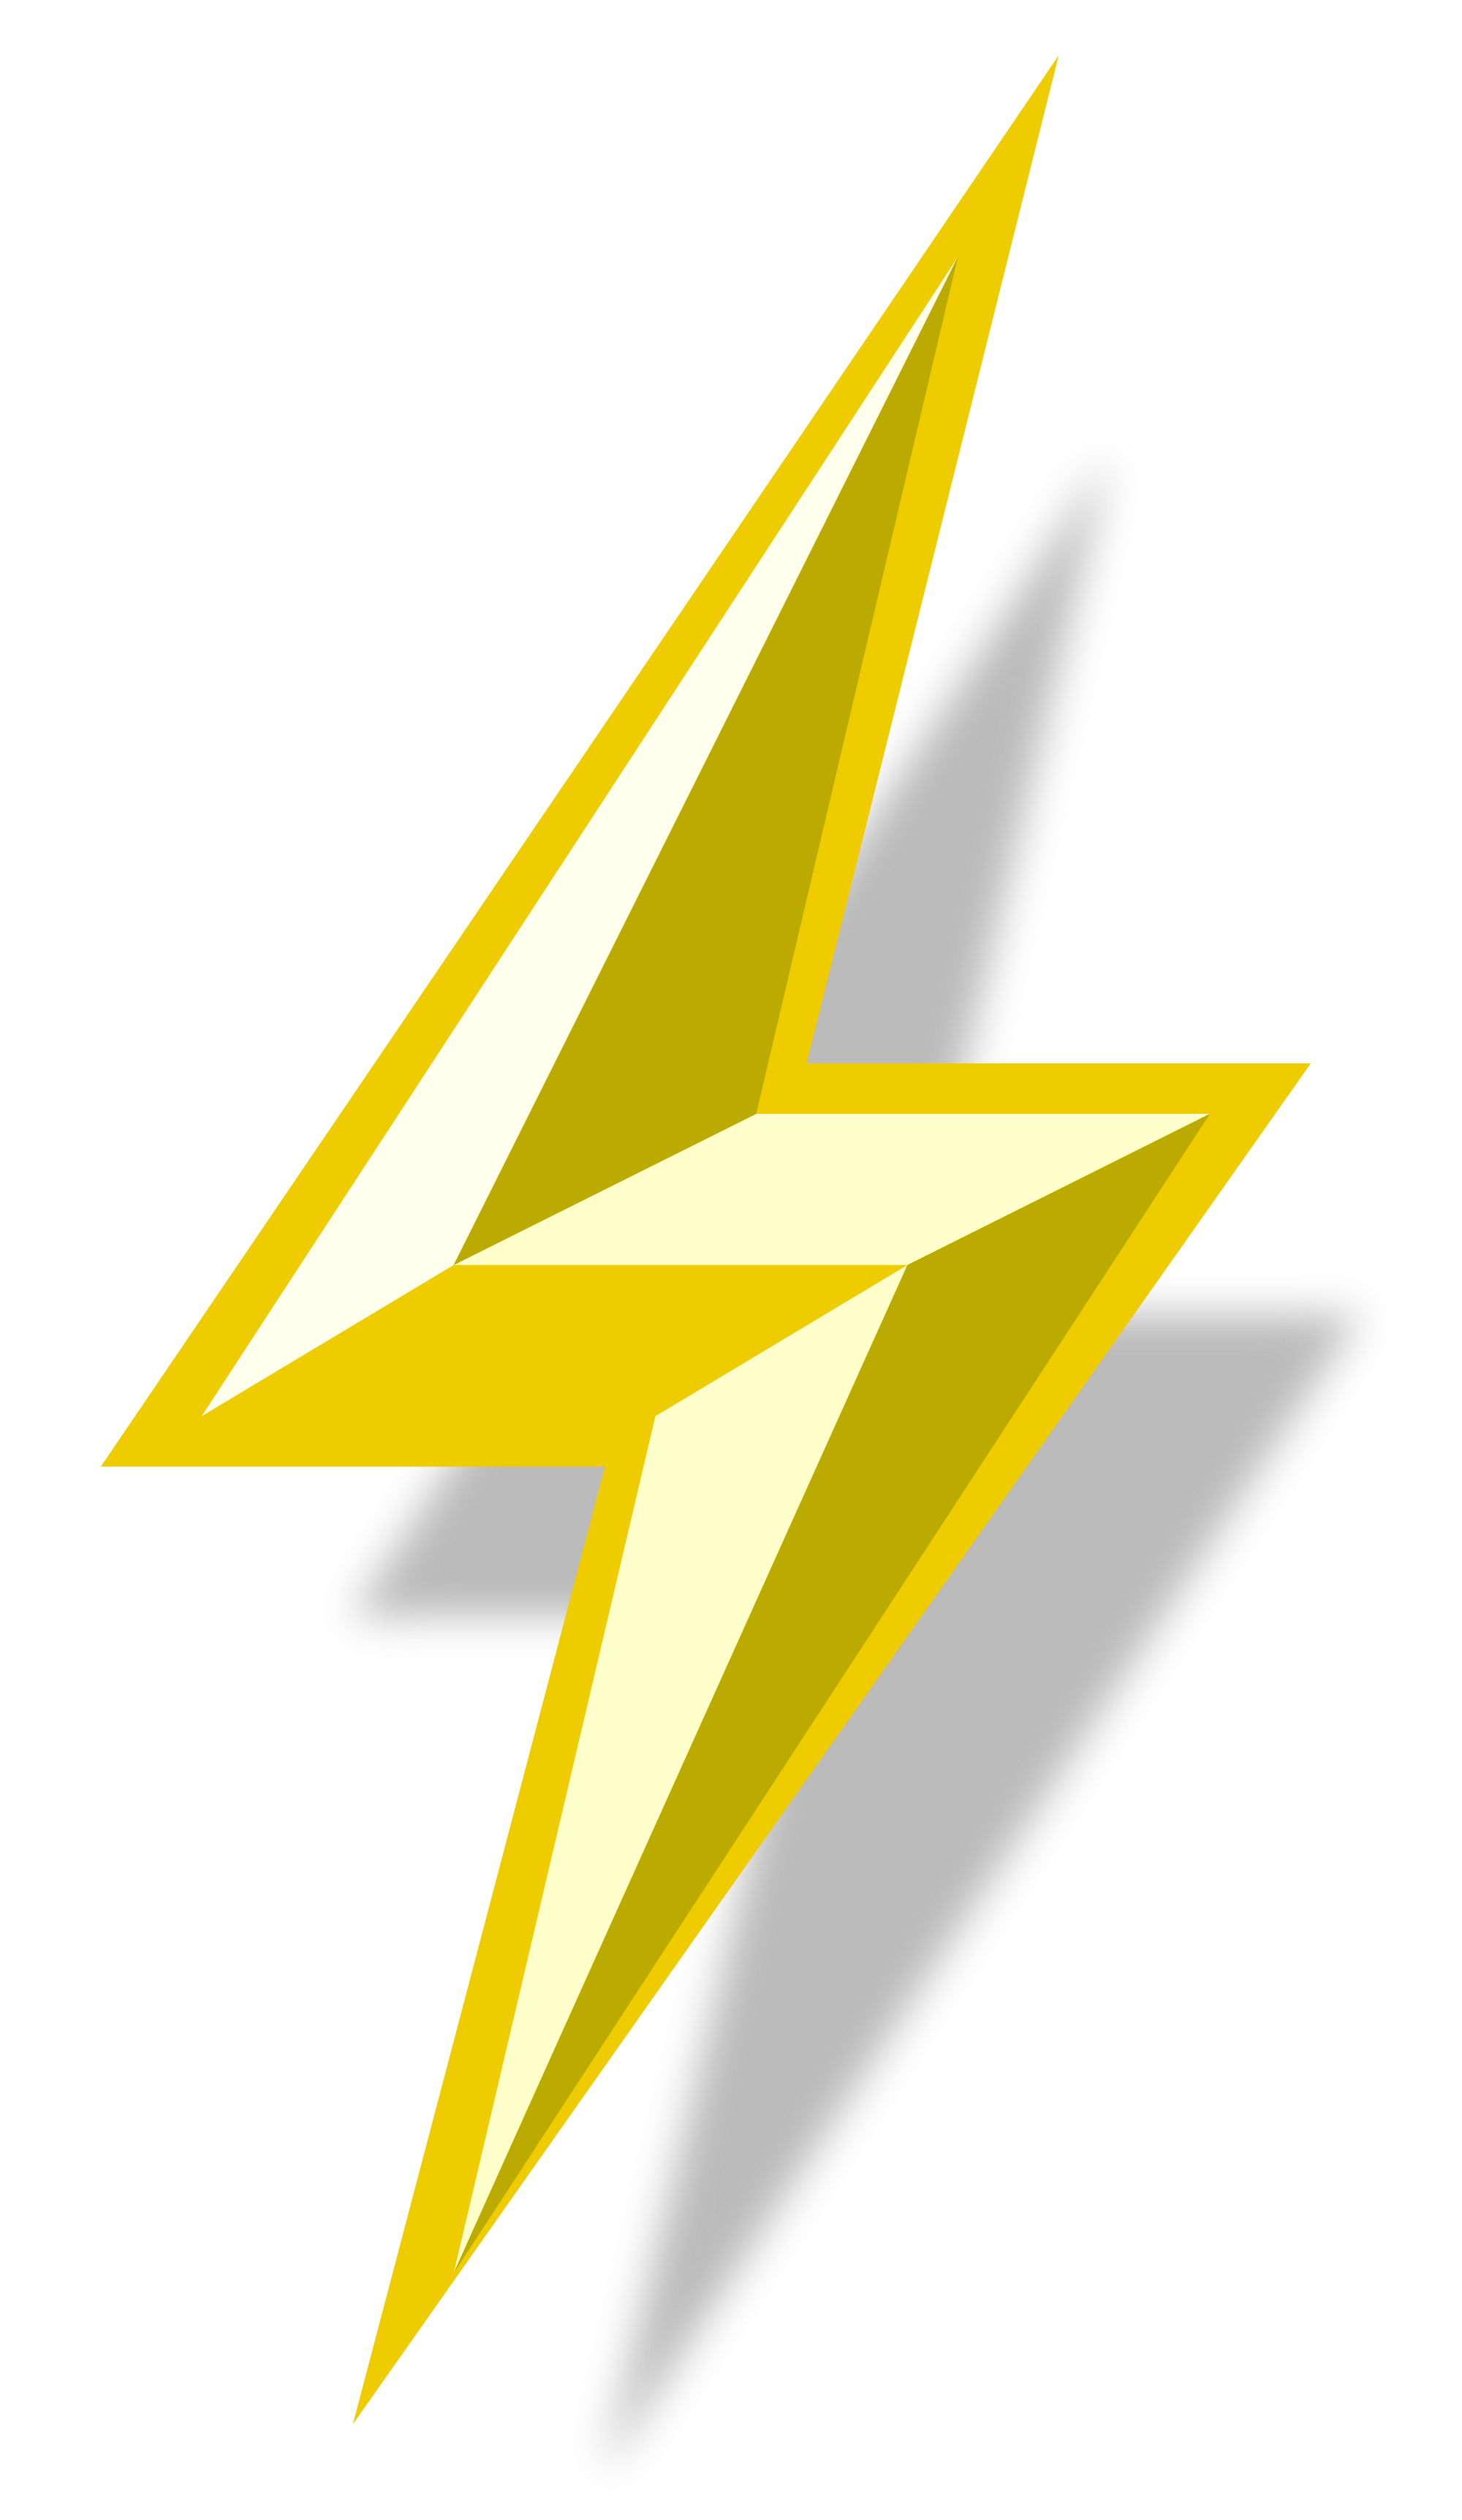 Lightning bolt png transparent background. Lighting images pluspng open